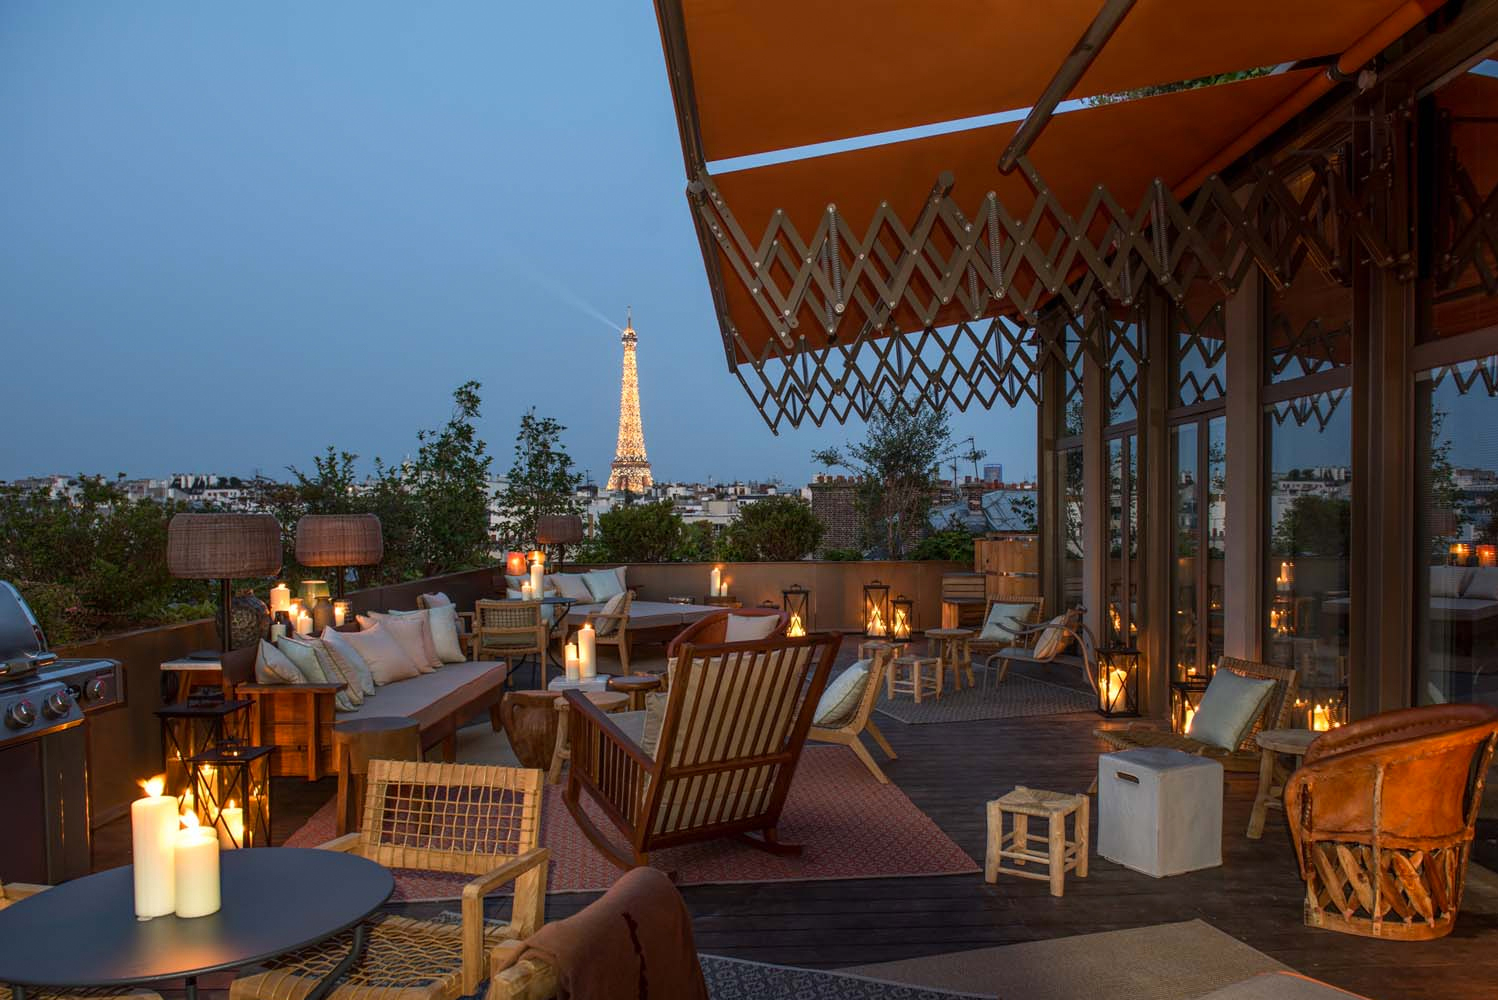 The suites – in particular – have tree-lined terraces and Norwegian baths, as well as a view of the rooftops of the city and some even looking over the Eiffel Tower.